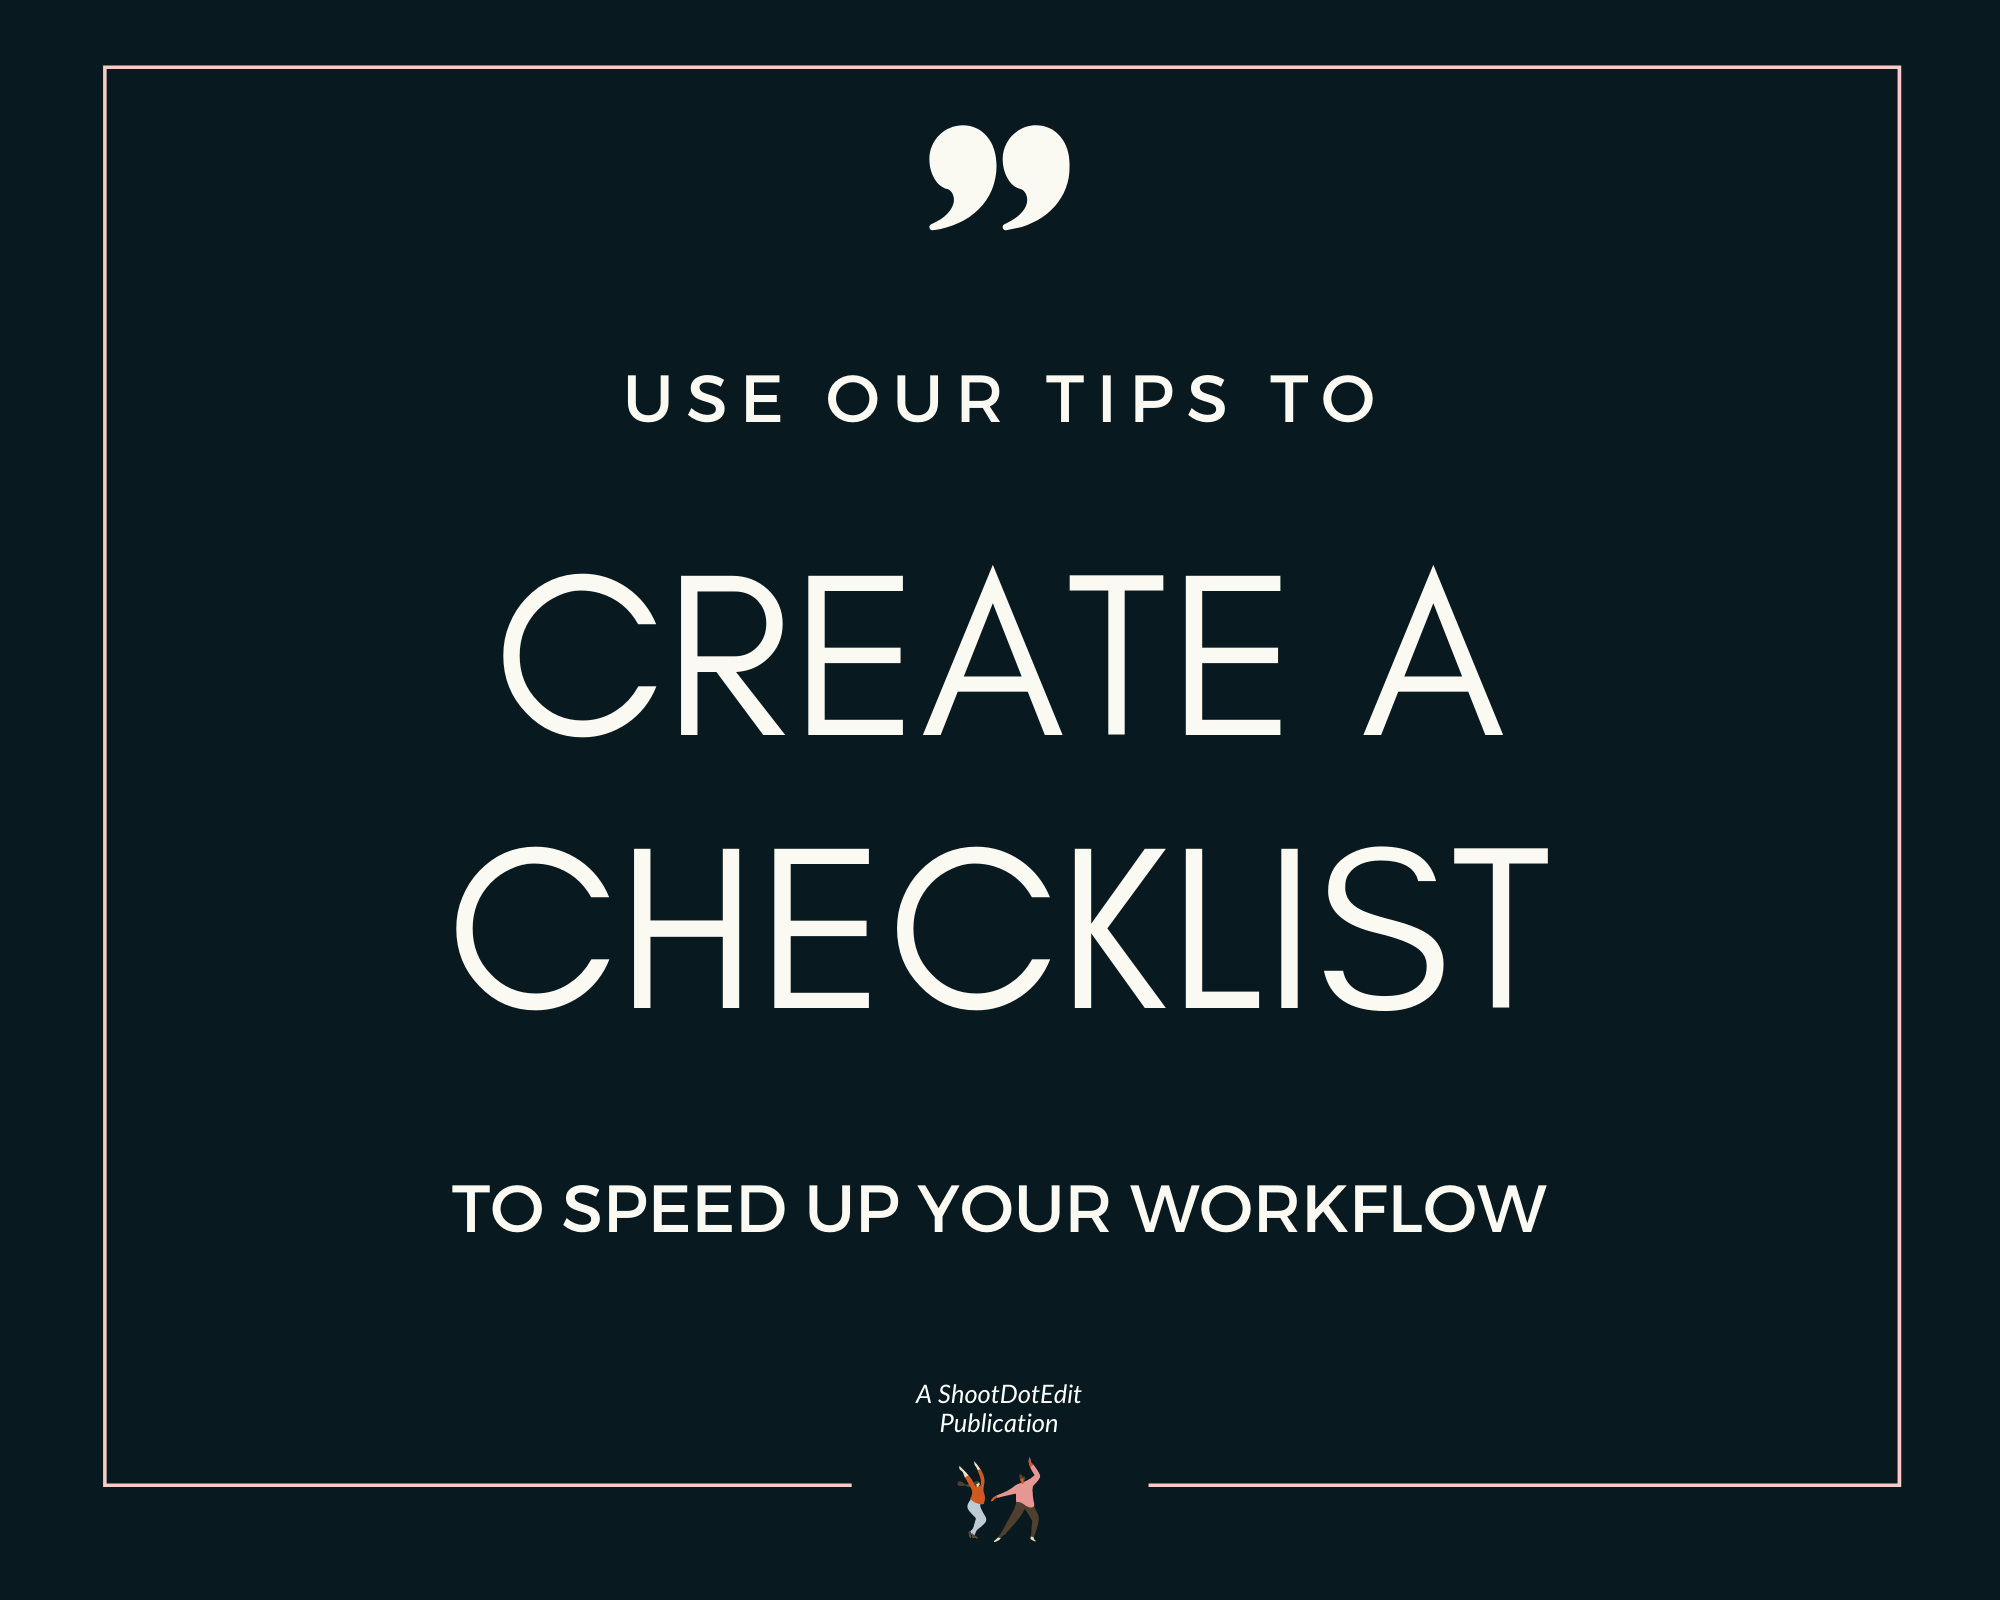 Graphic displaying - Use our tips to create a checklist to speed up your workflow